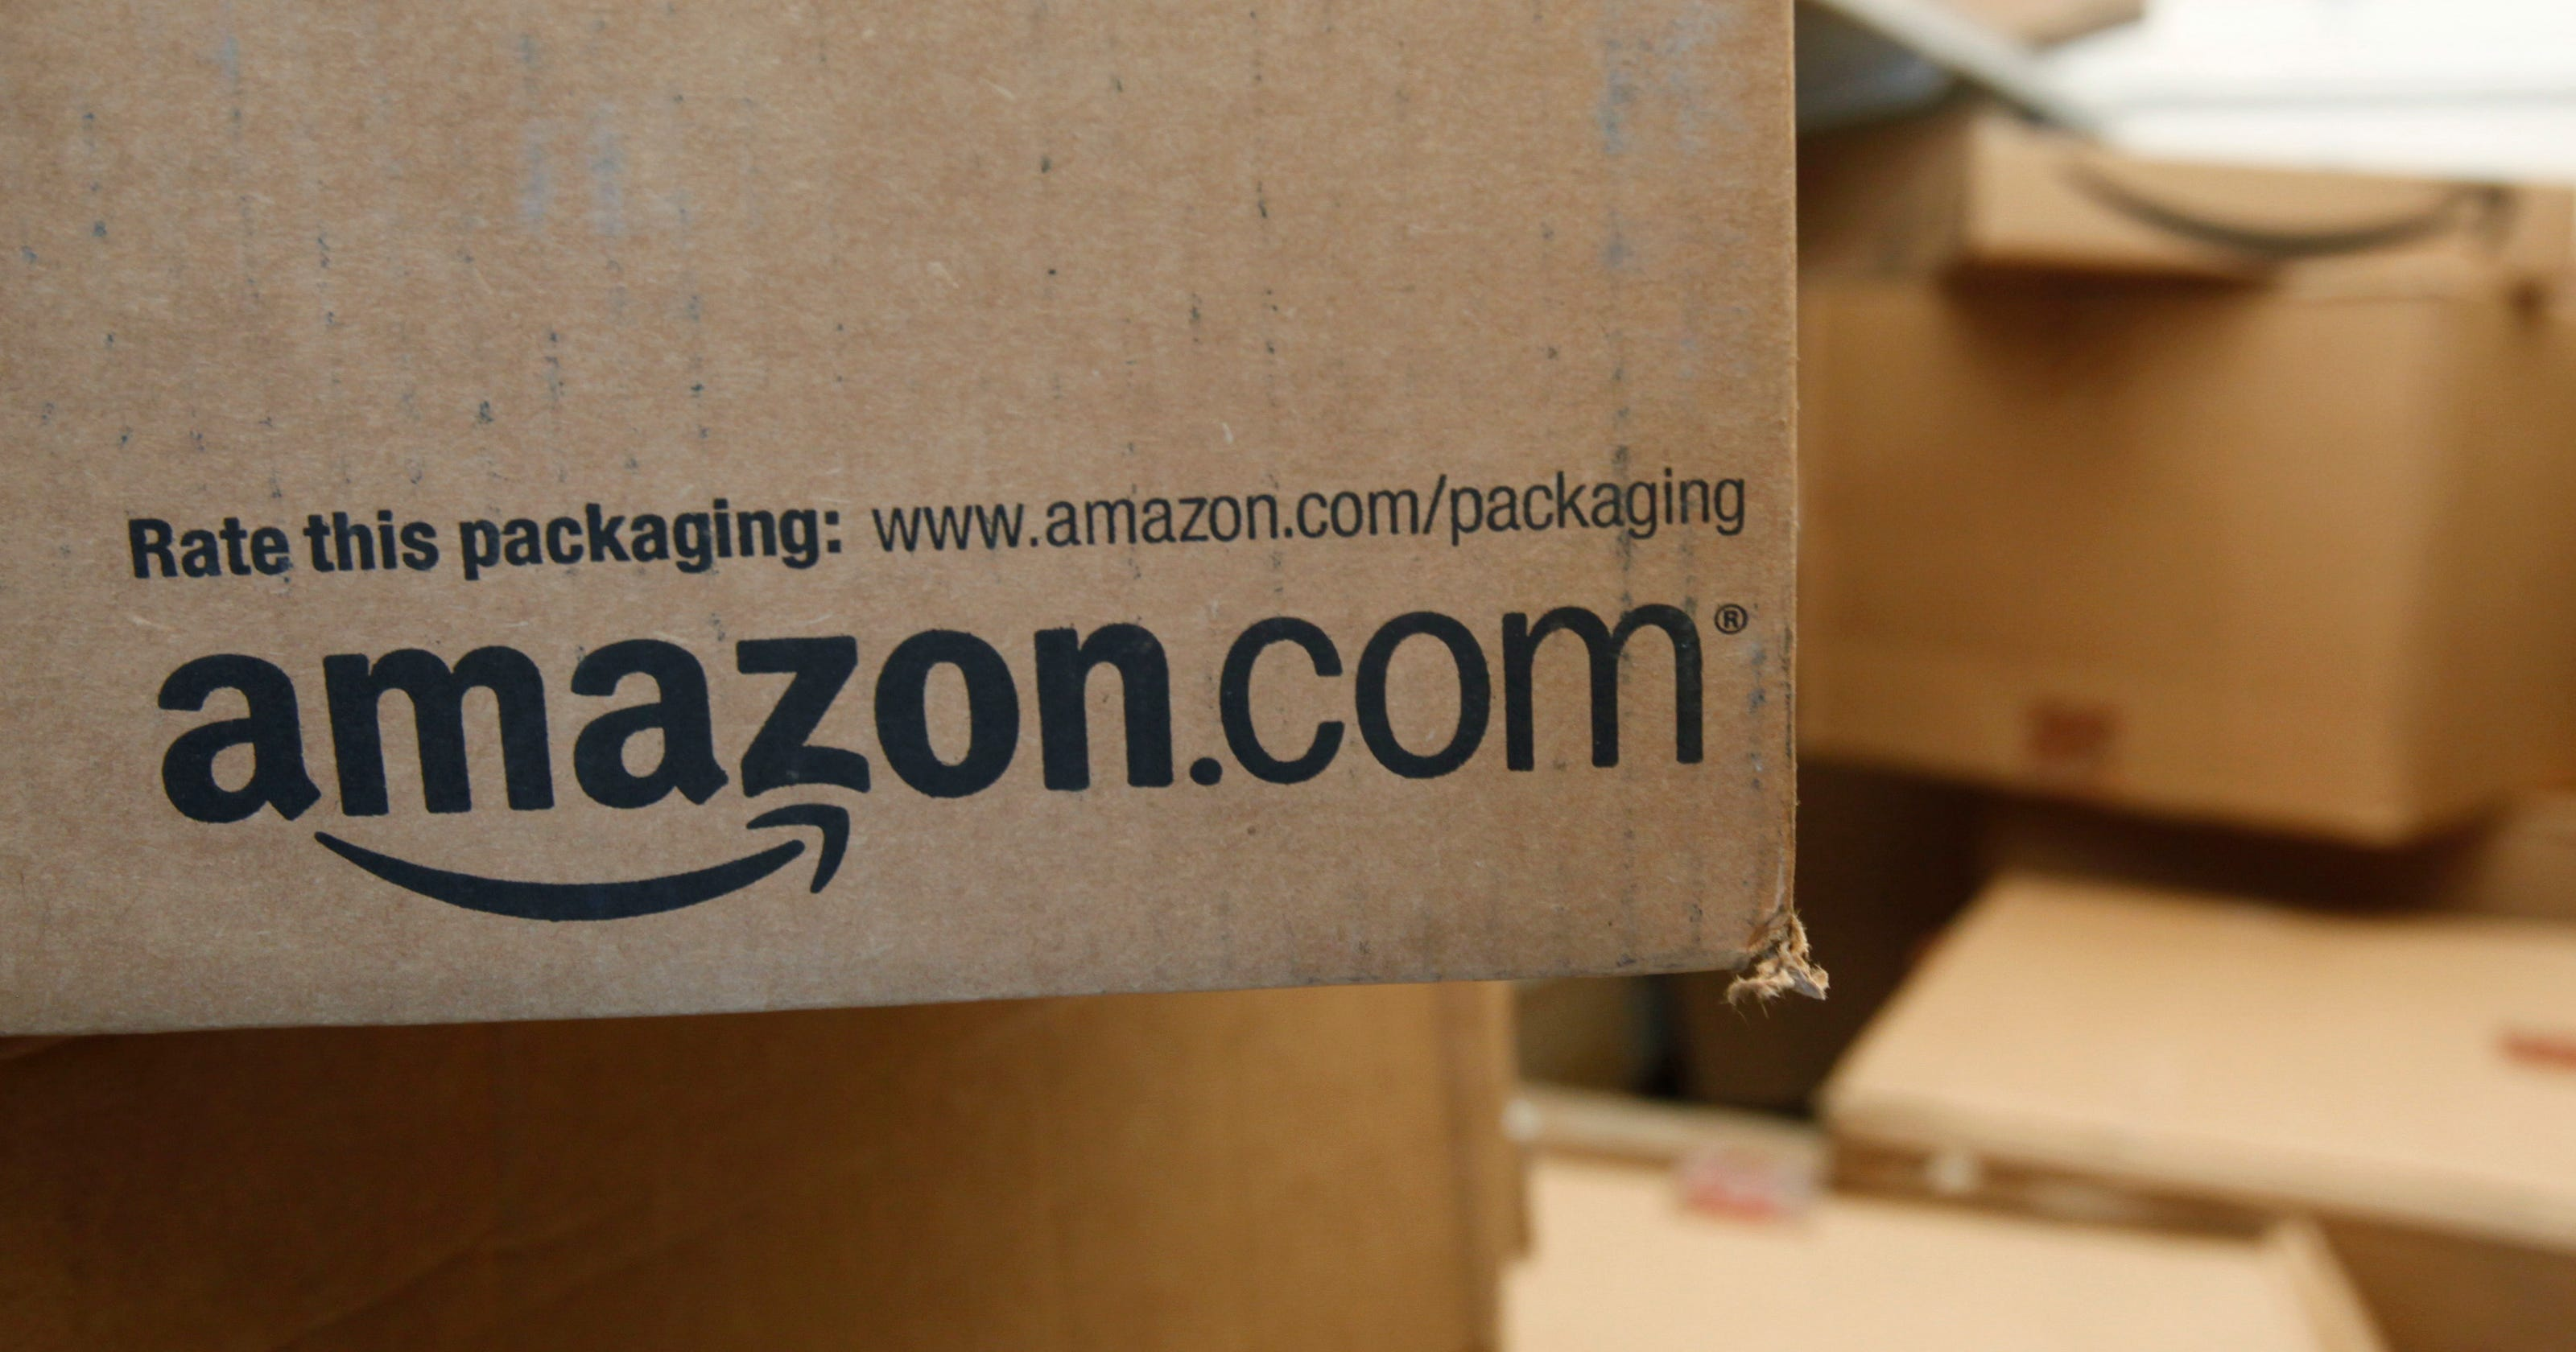 Amazon package stolen? Here's what you should do